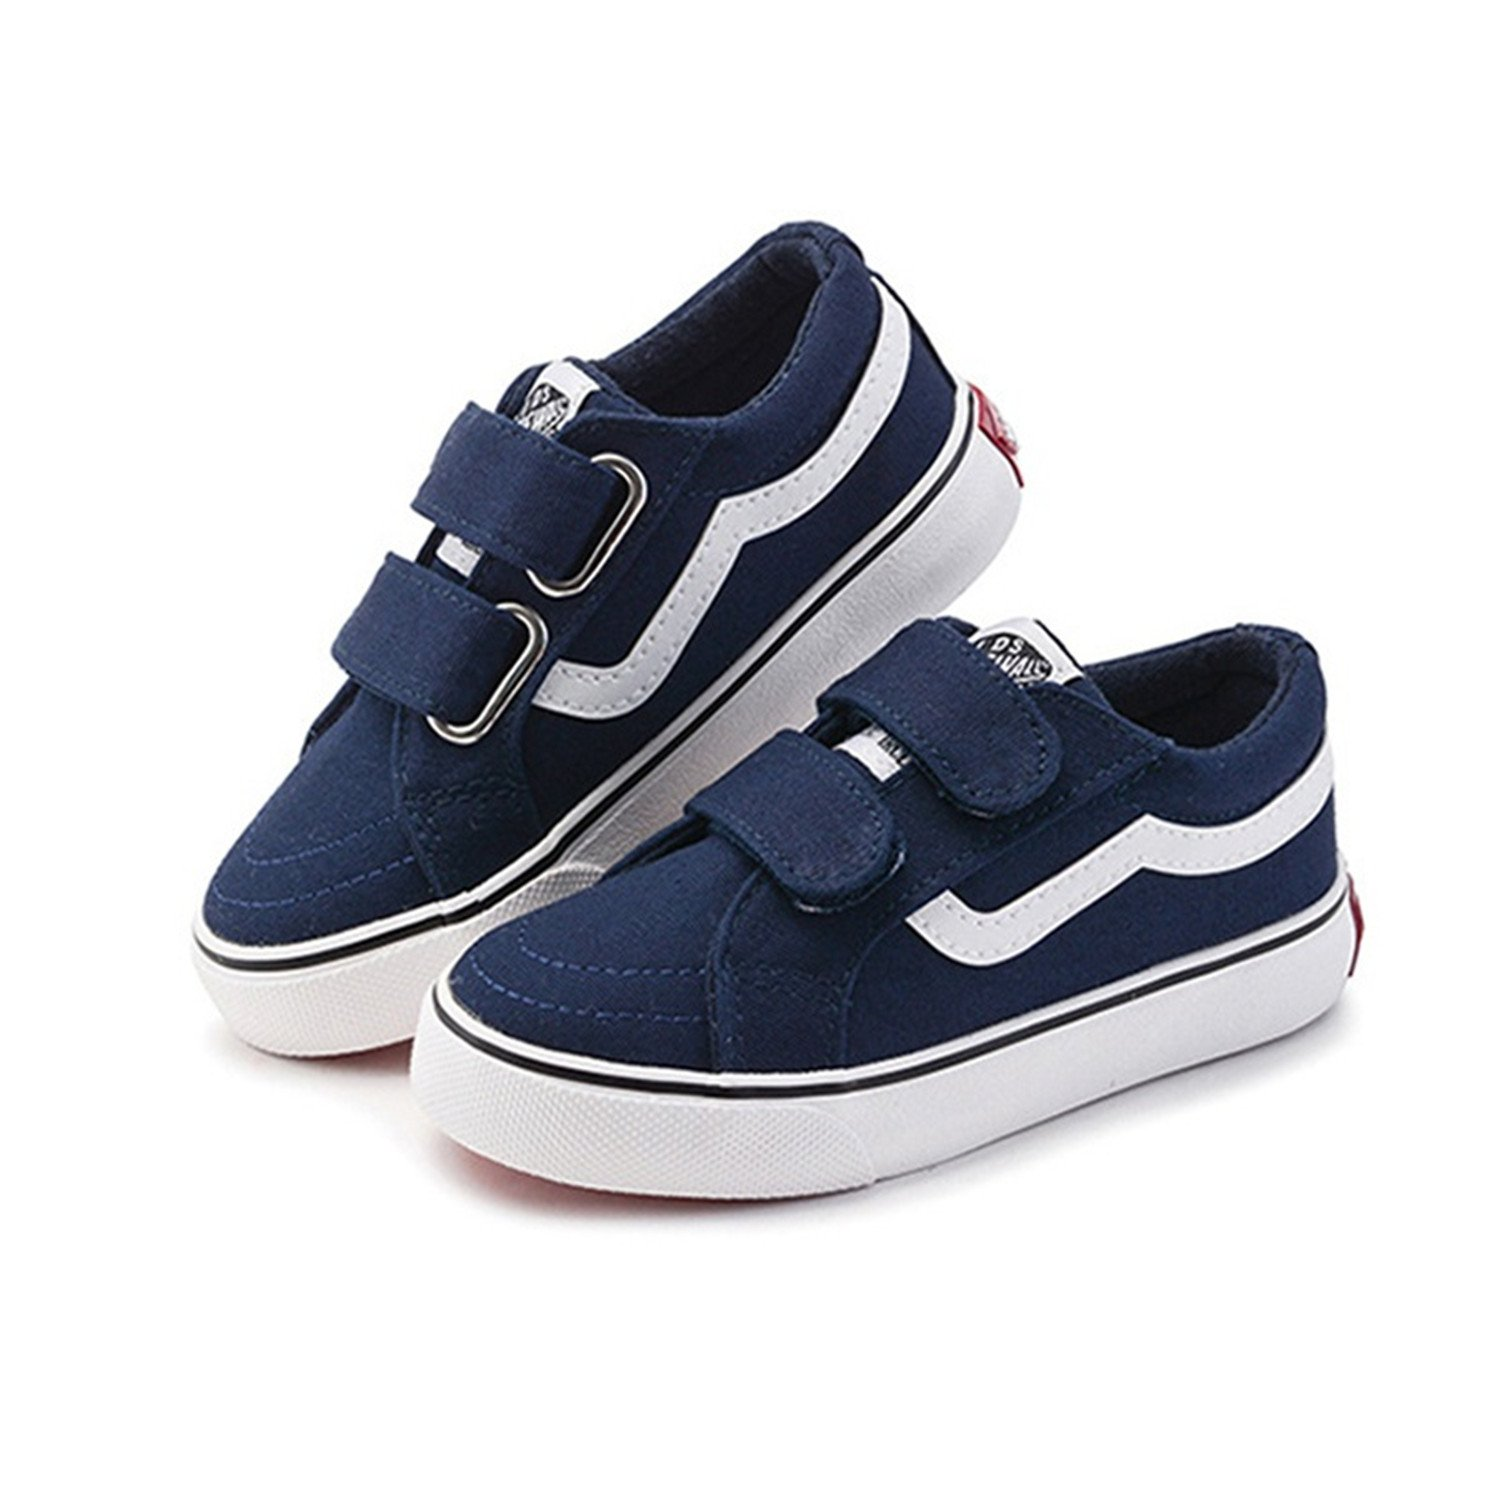 Boy Canvas Children Shoes Black Sneakers 2018 Spring Girls Shoes White Solid Kids Boy Canvas